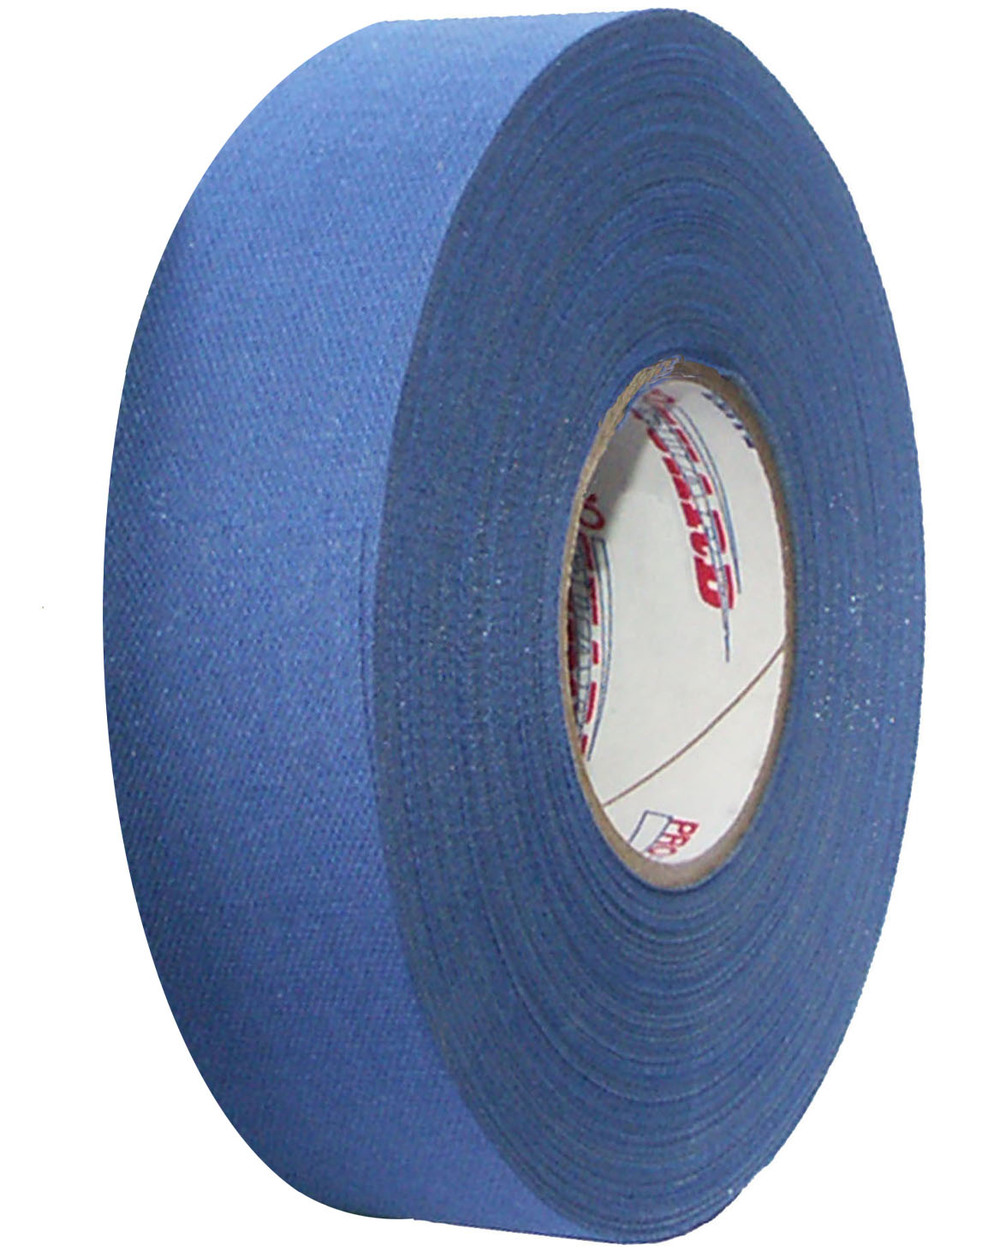 130RY_TAPE ROYAL CLOTH.jpg